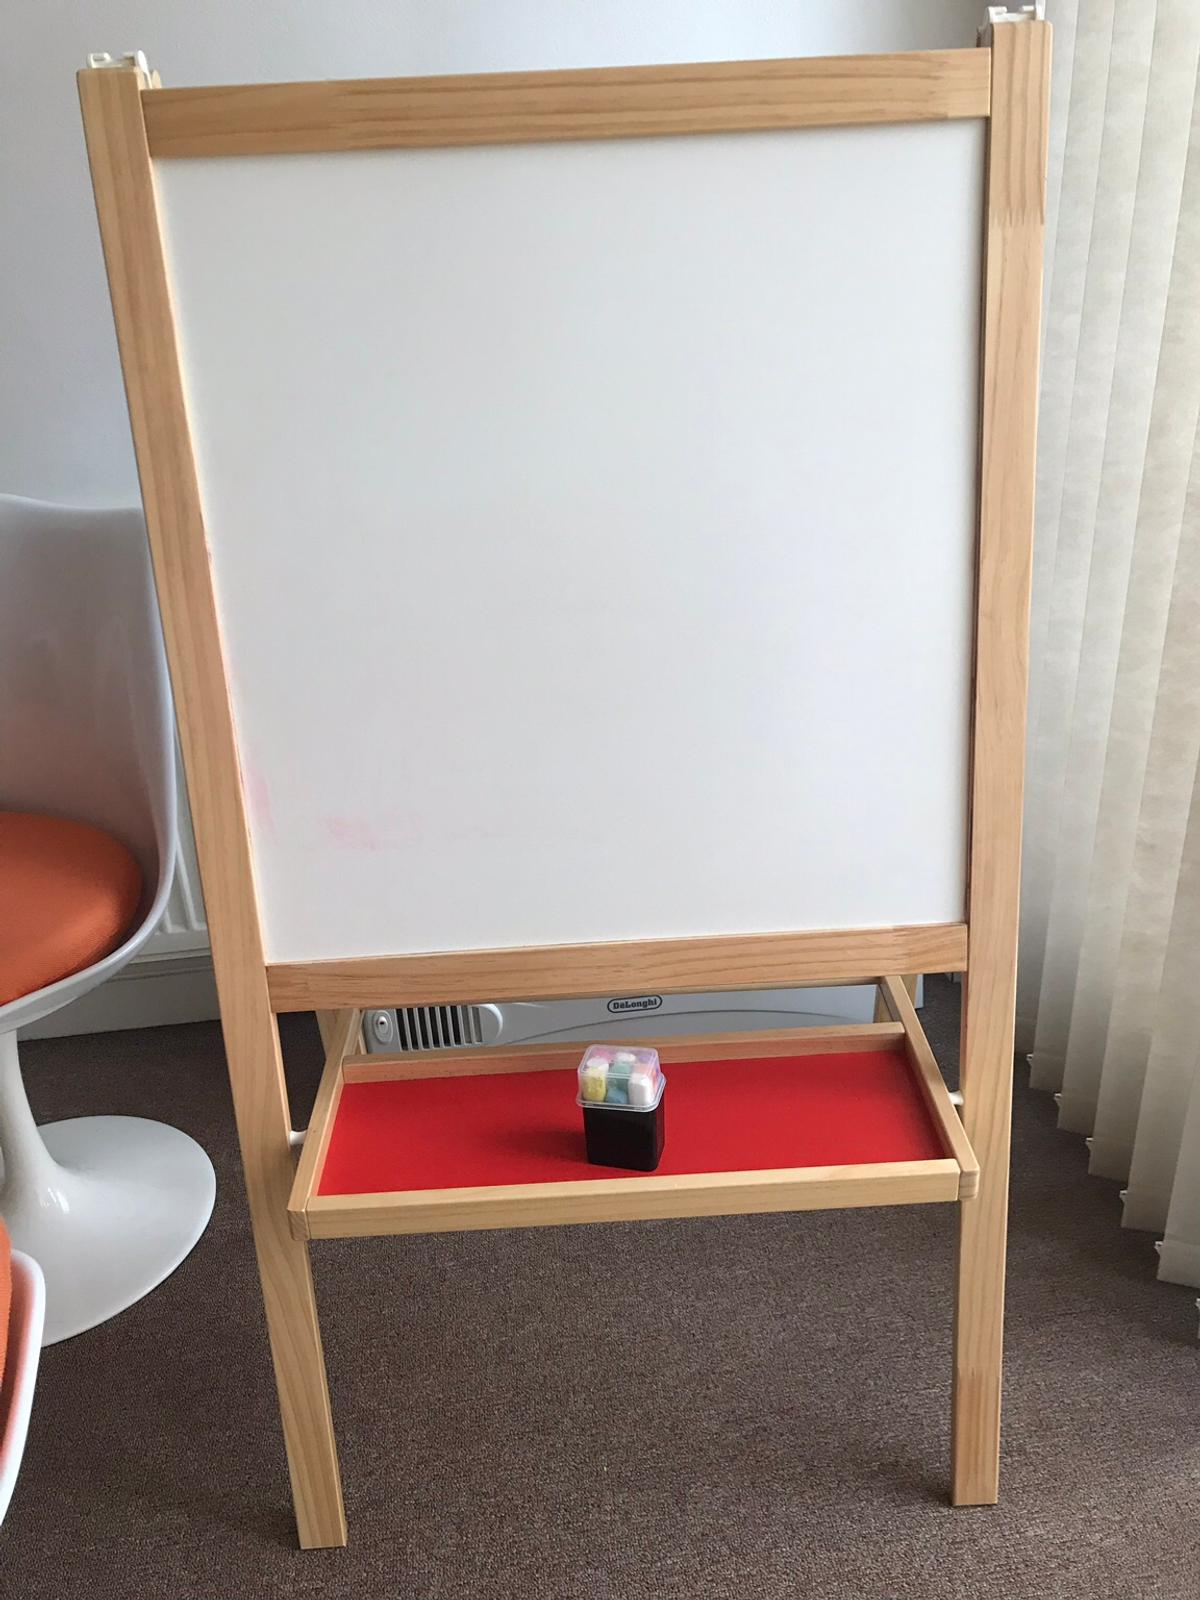 Ikea Mala Easel Whiteboard Blackboard In B26 Birmingham For 5 00 For Sale Shpock